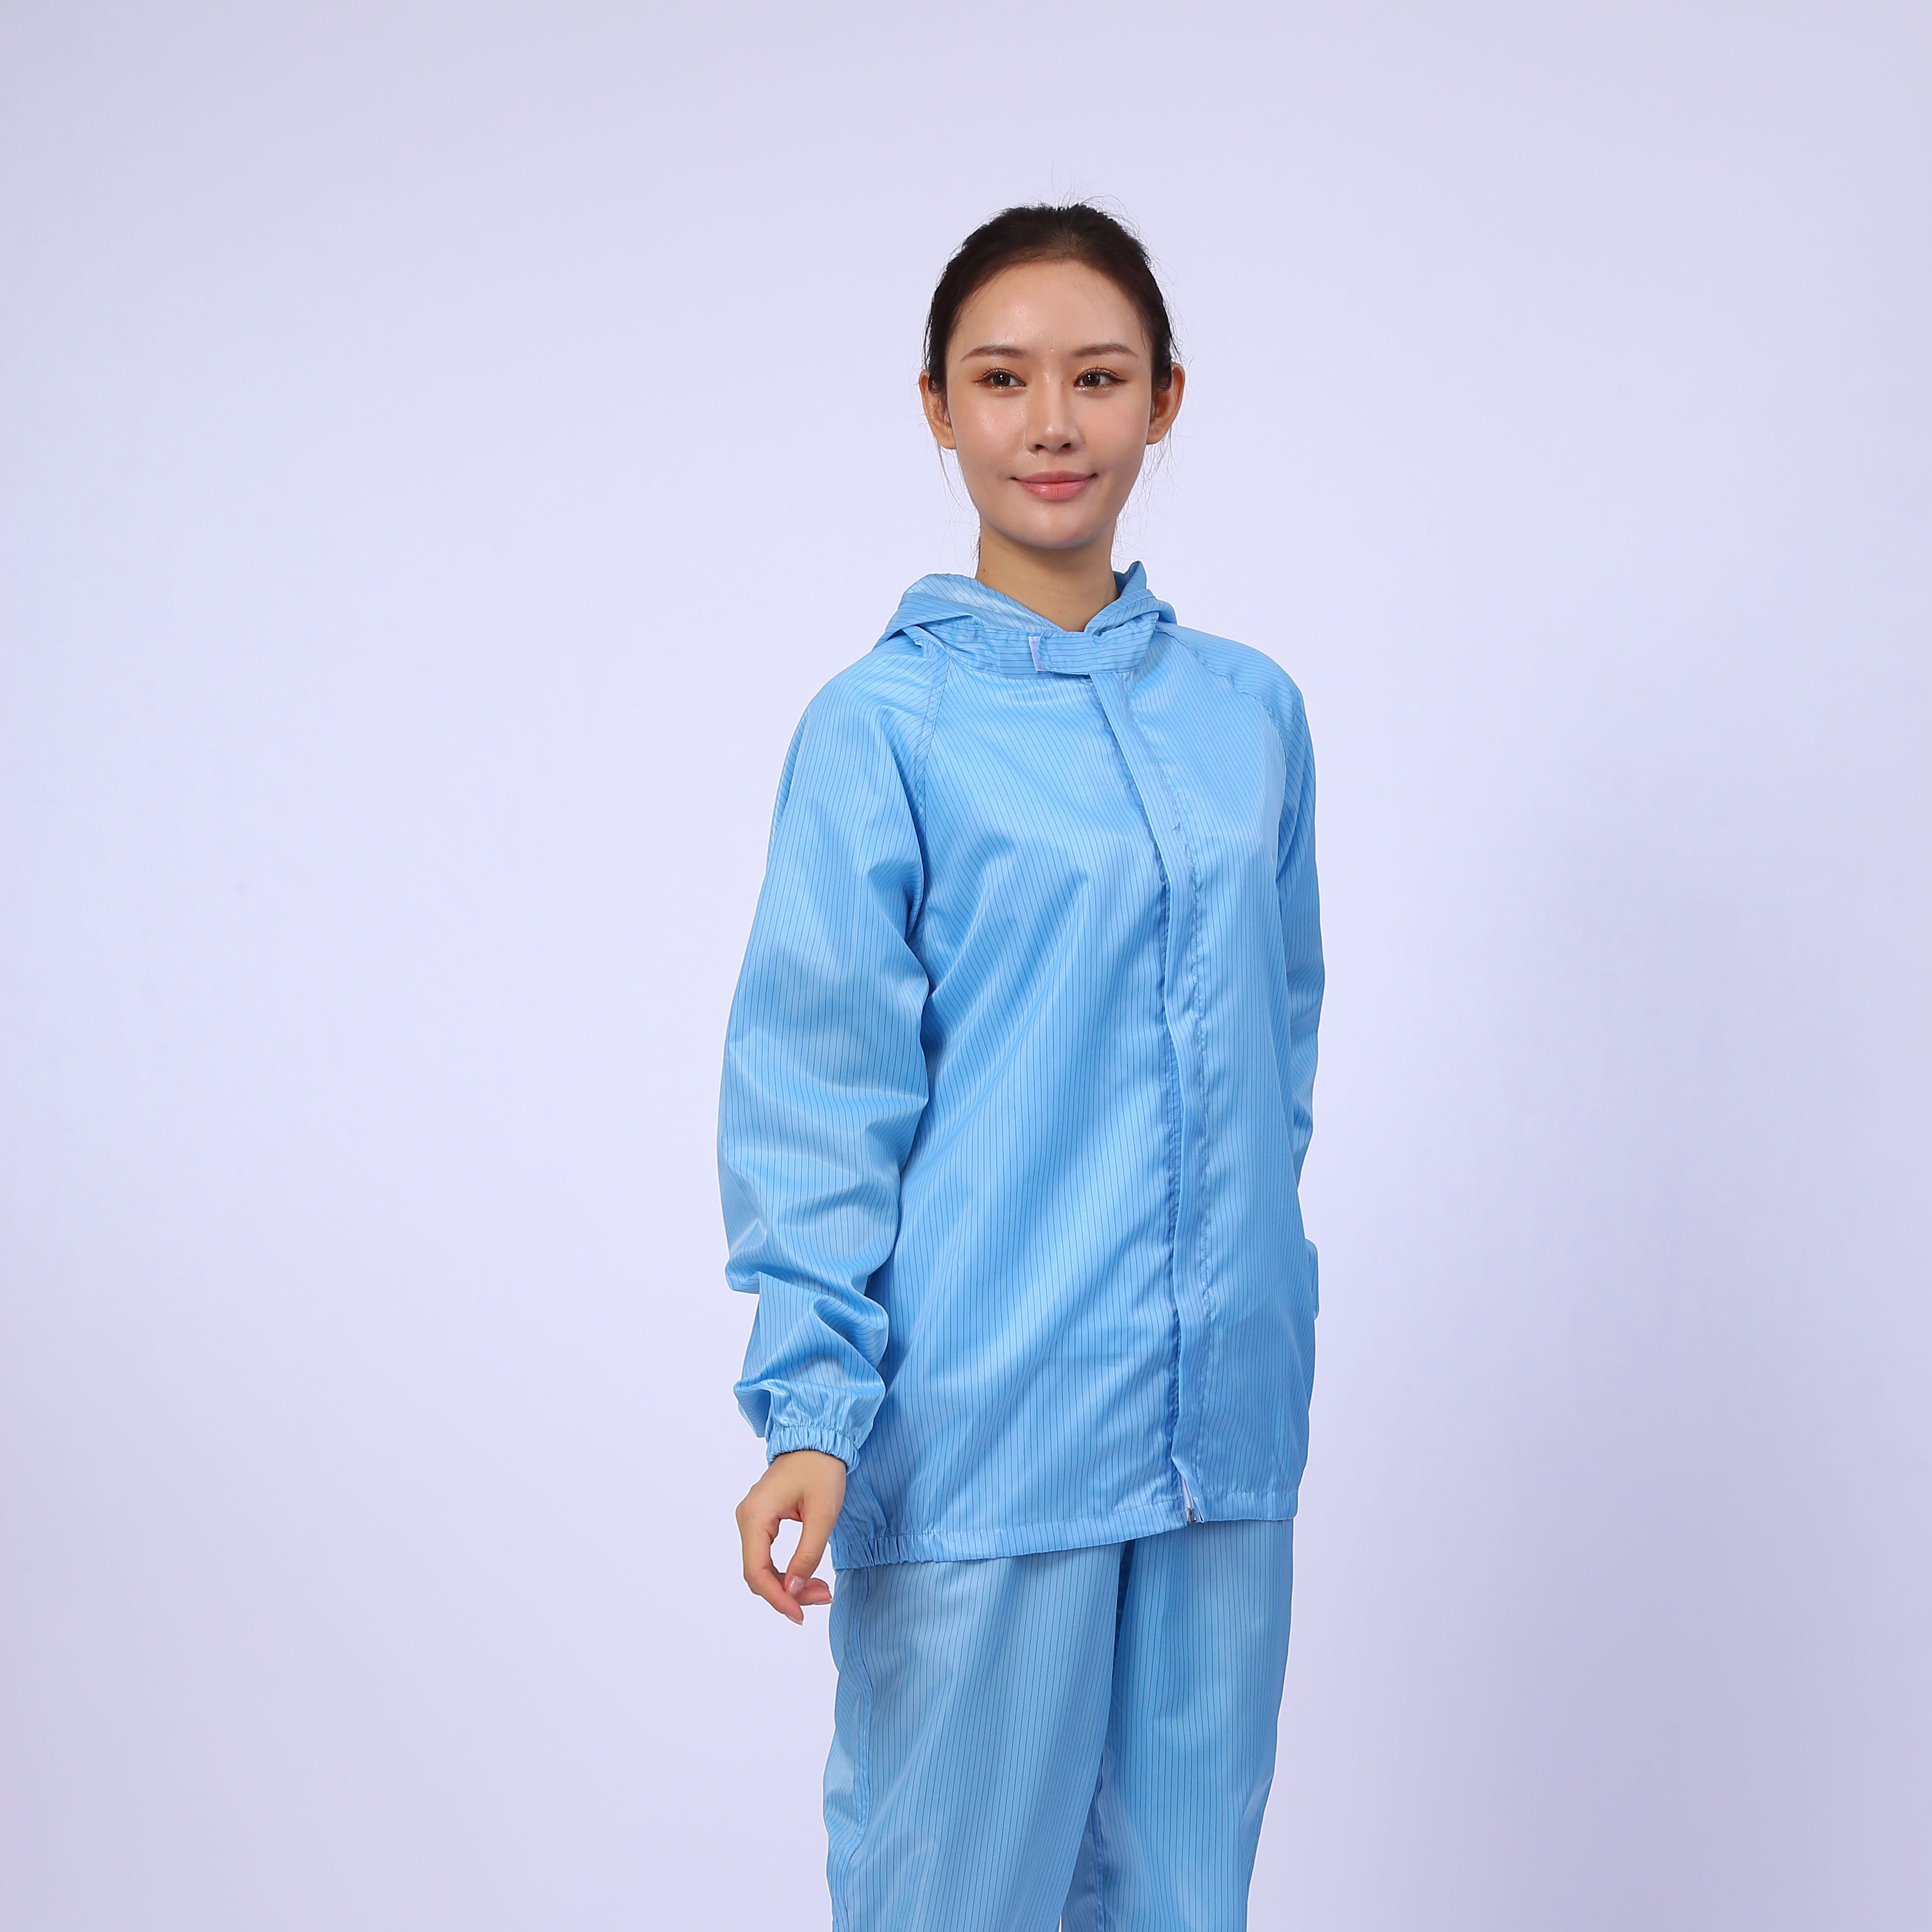 Wholesale Lint Free ESD Labour Suit Cleanroom Garment Work Clothes Antistatic Esd Smock Uniform Overalls